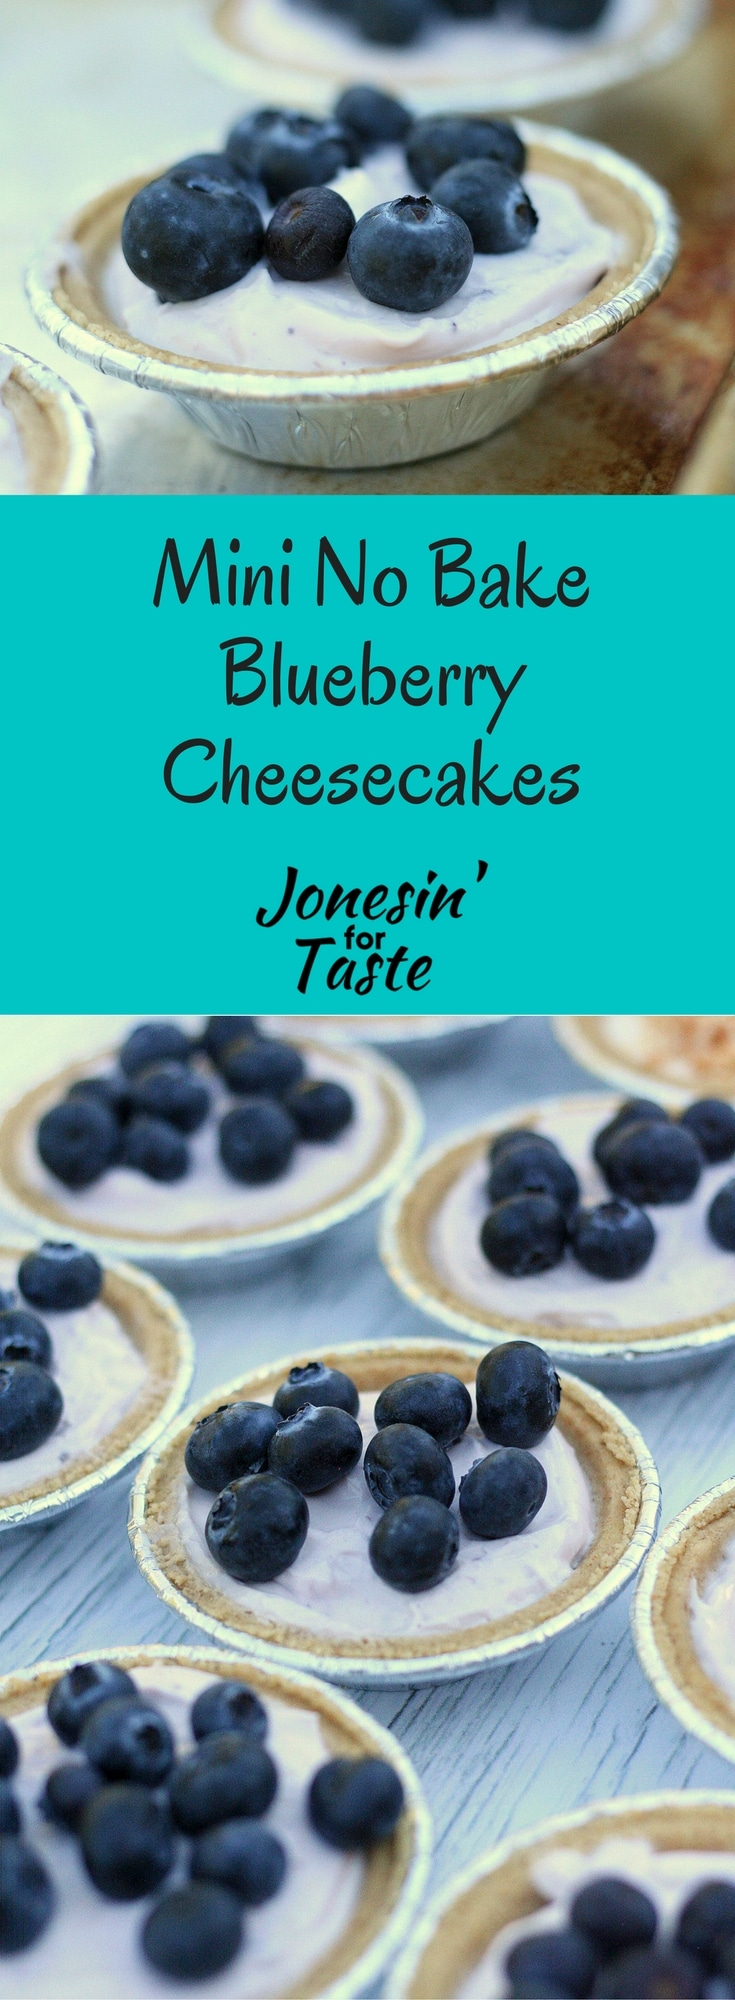 Easy 4-ingredient No Bake Blueberry Cheesecakes are perfectly individual portioned mini pies and a healthier version of your favorite cheesecakes.